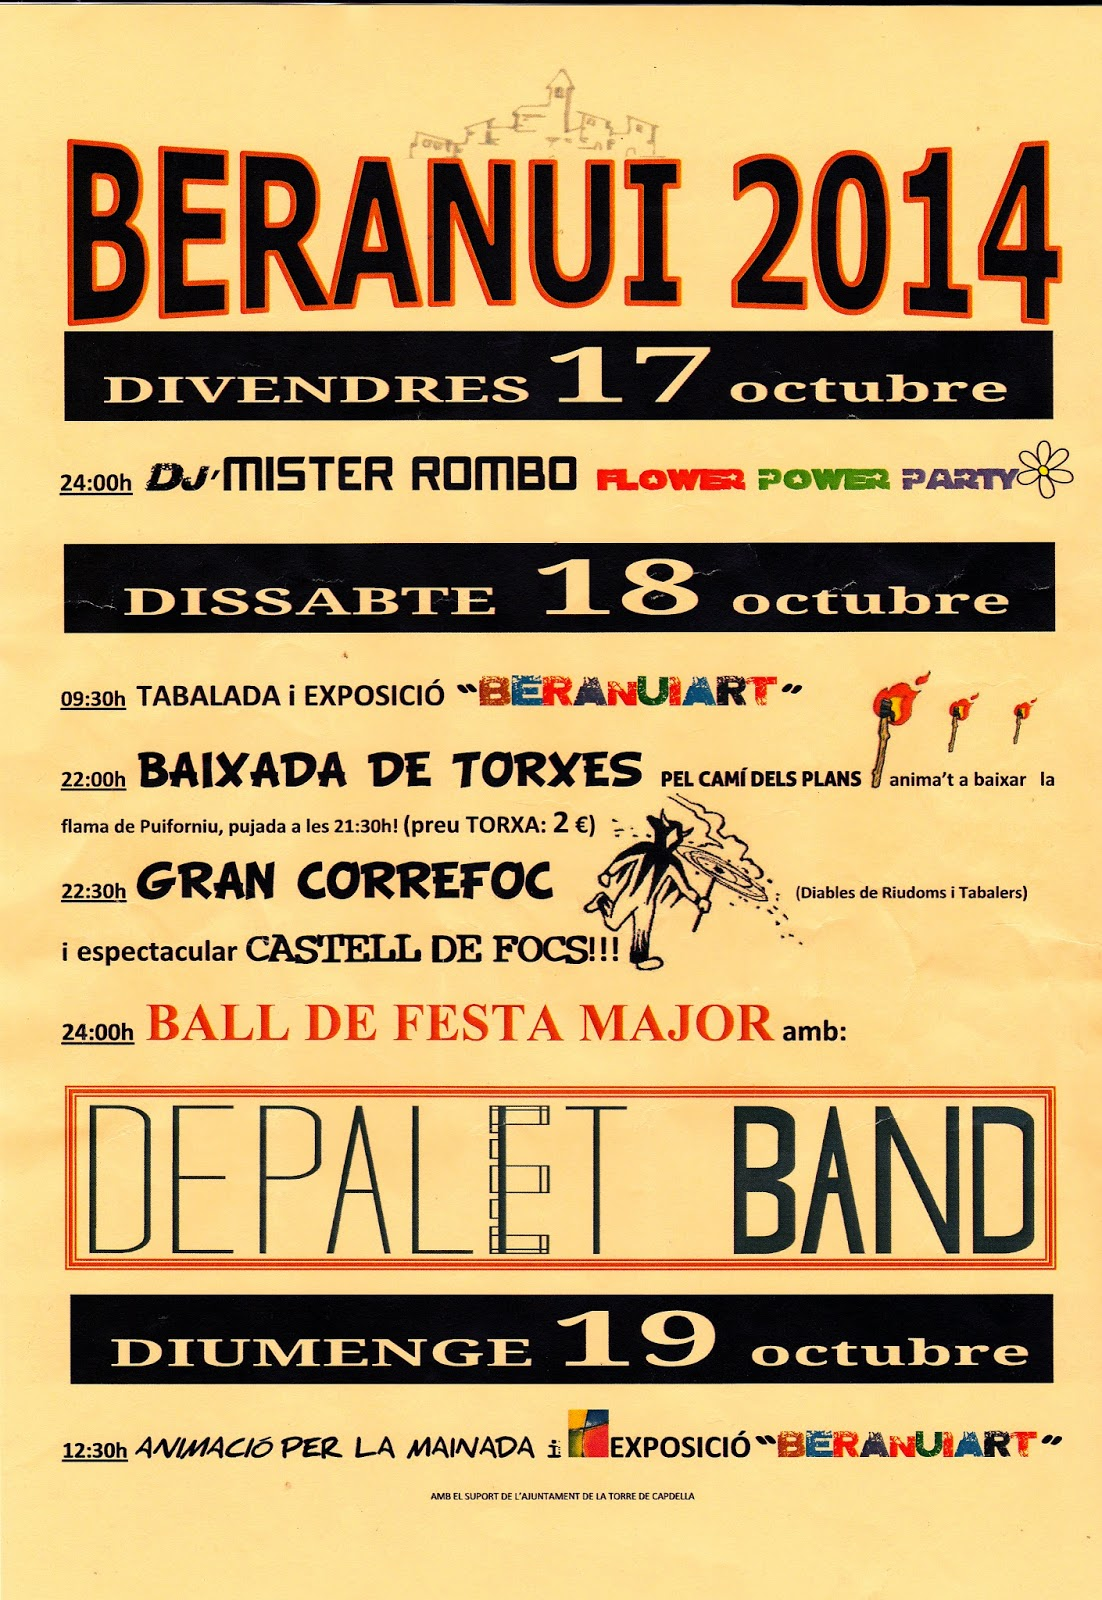 Festa Major Beranui 2014